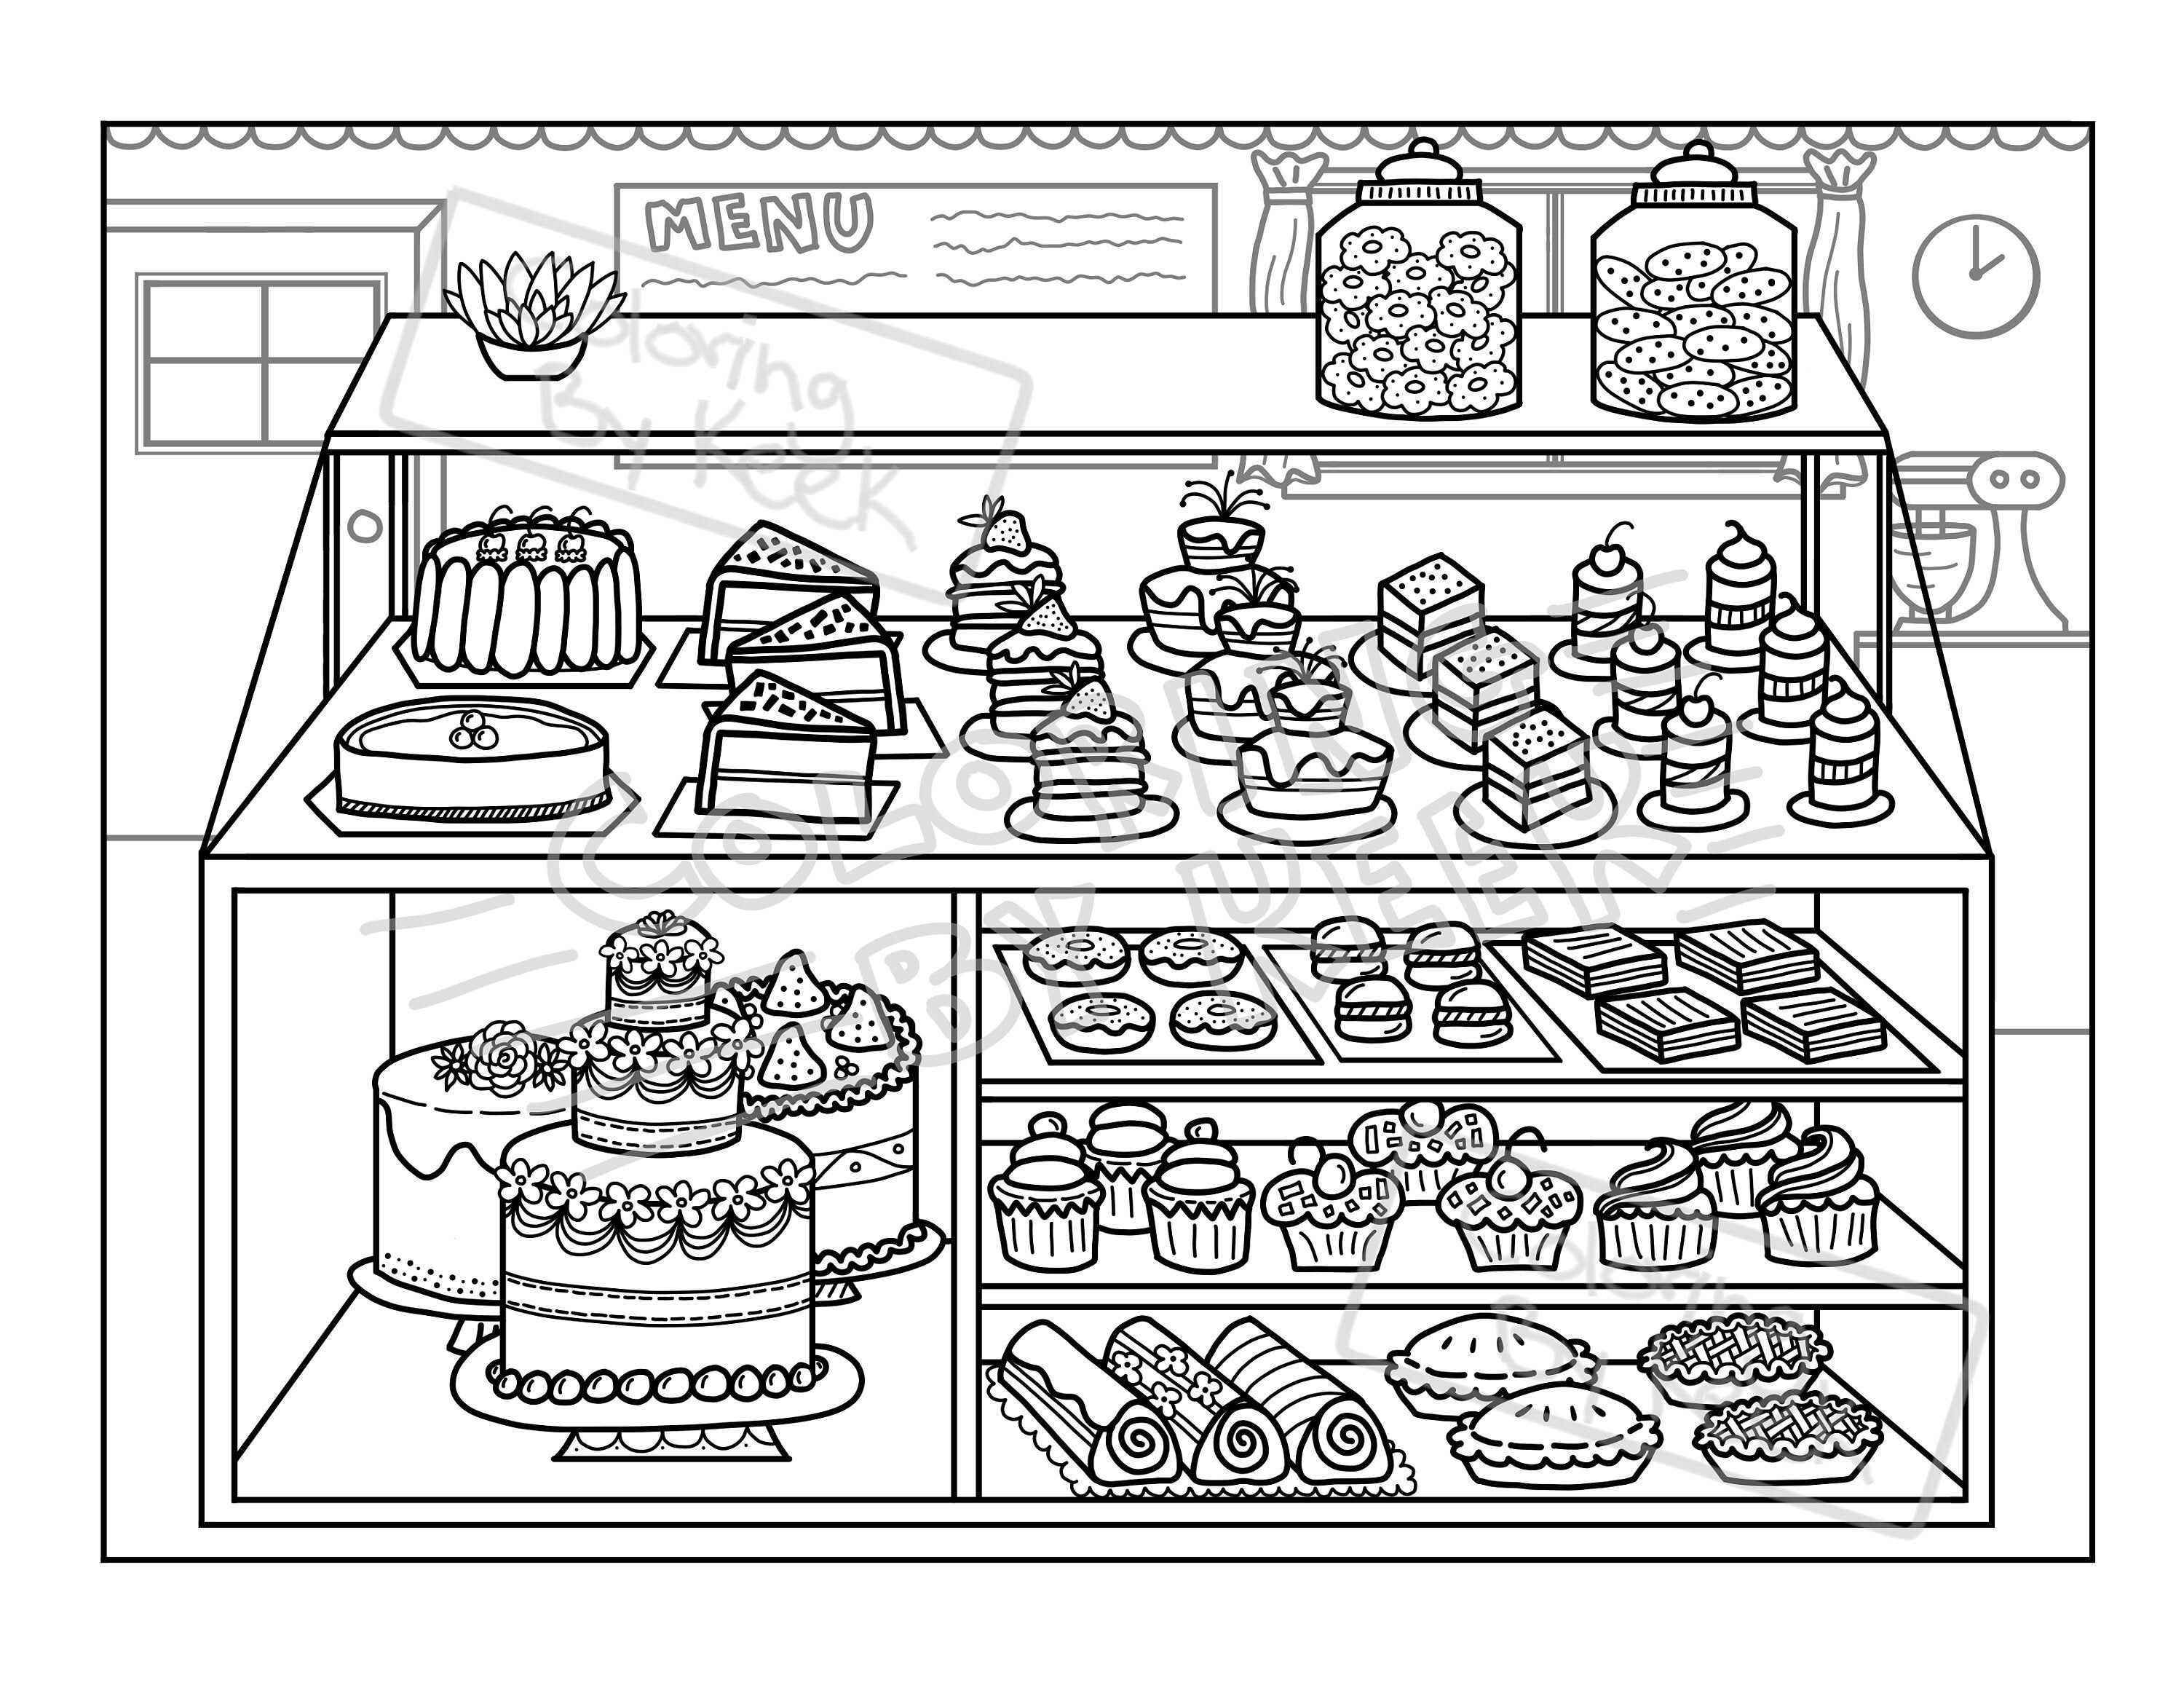 Free Easy To Print Cake Coloring Pages Food Coloring Pages Cute Coloring Pages Coloring Pages